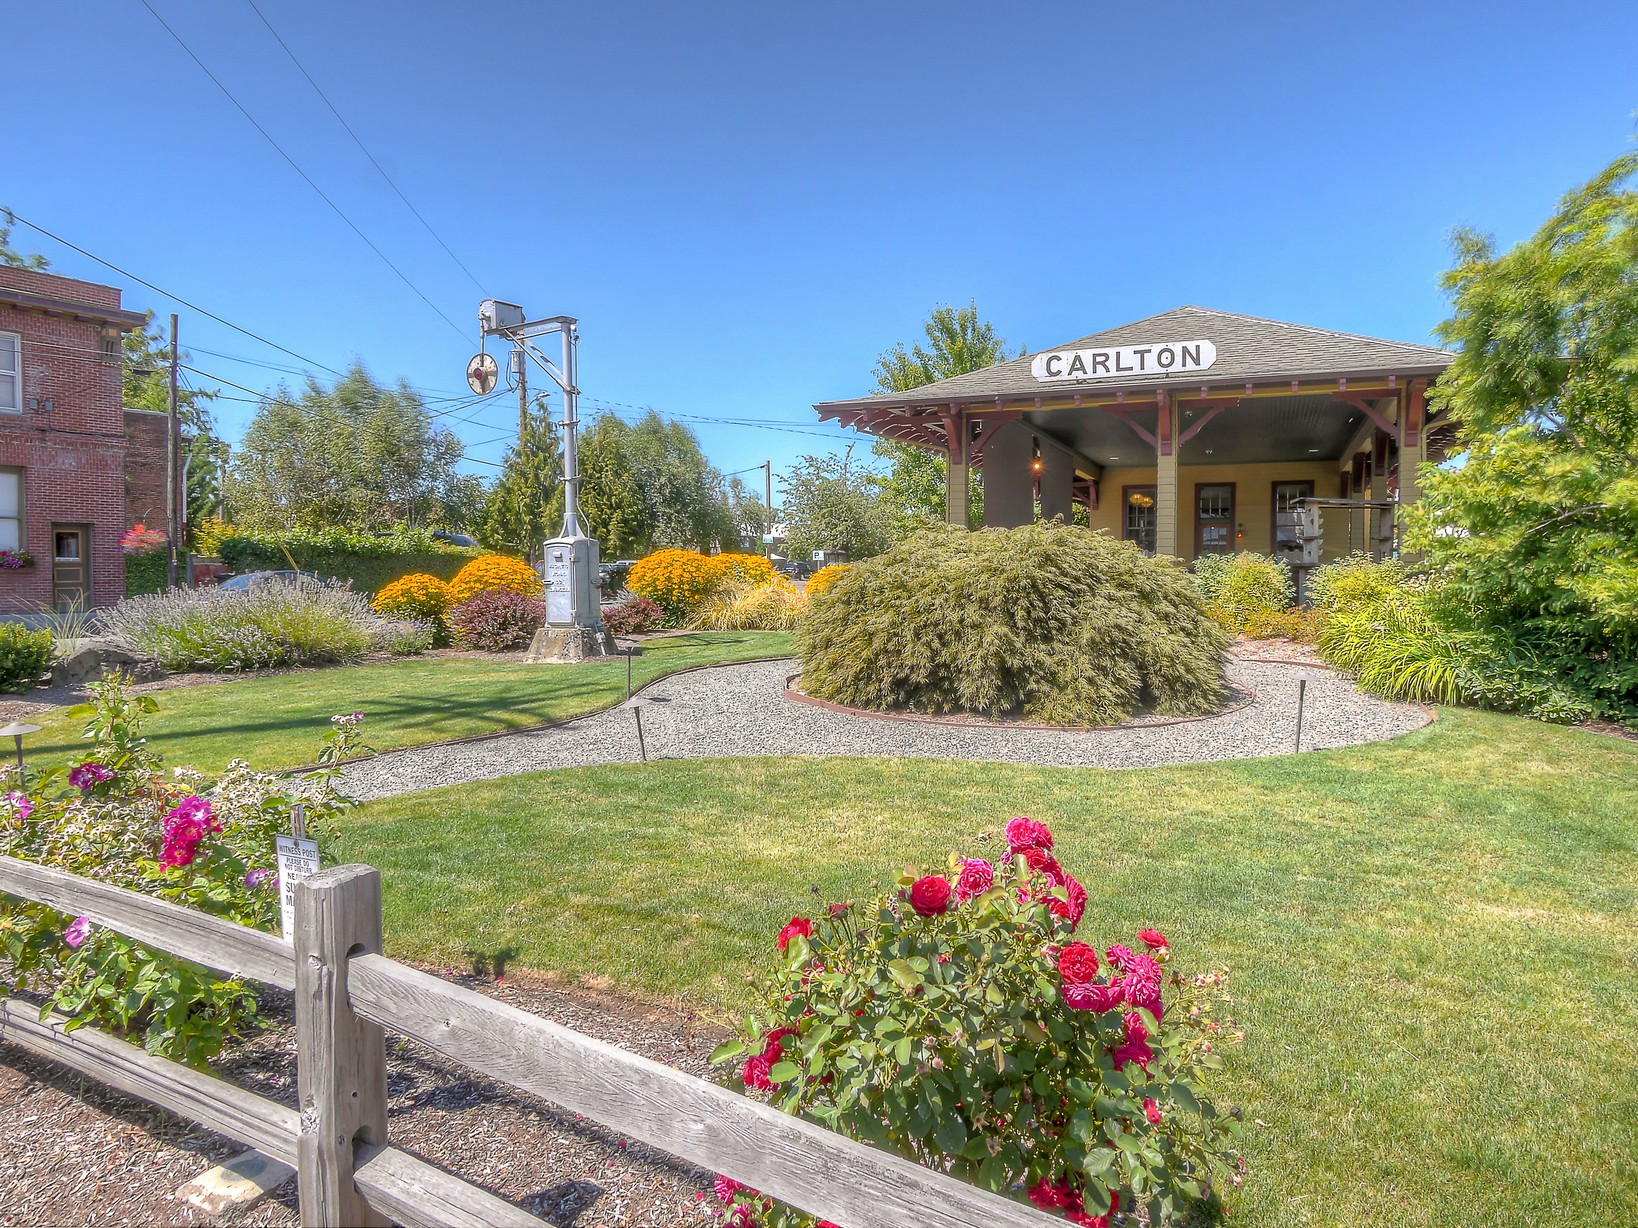 7-carlton-oregon-train-station-the-kelly-group-real-estate